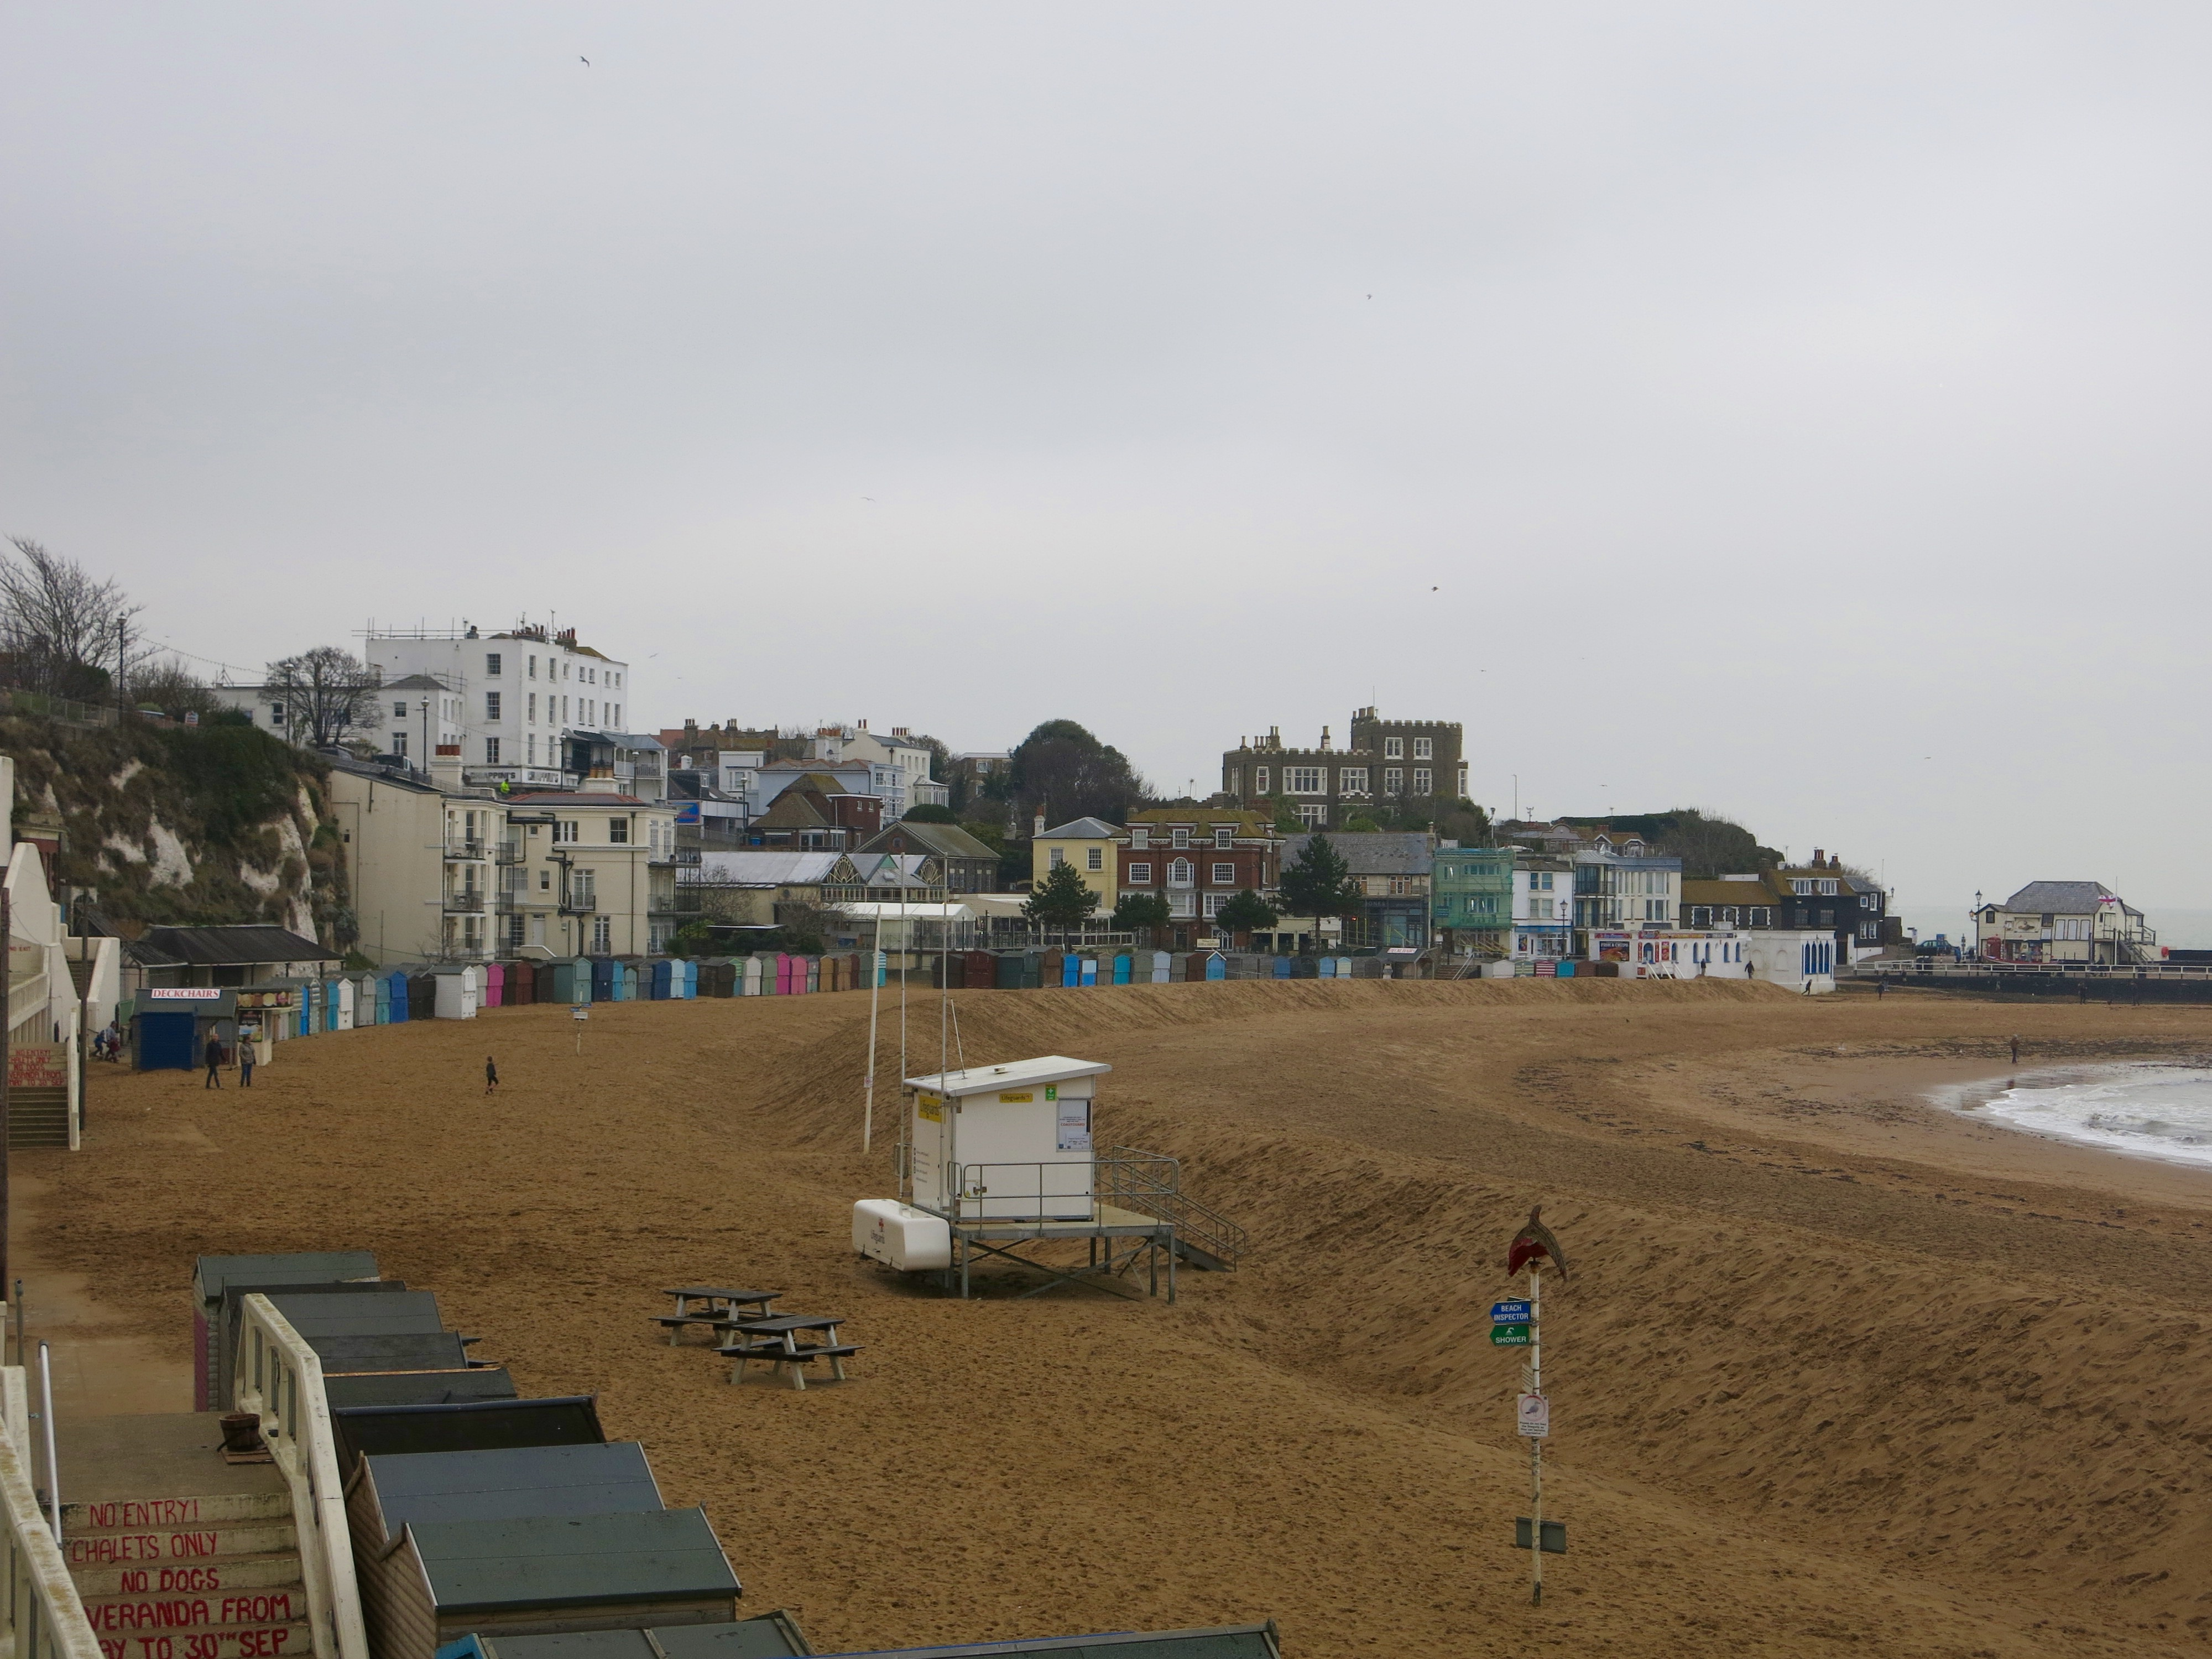 Ramsgate to Margate - 1 (8)